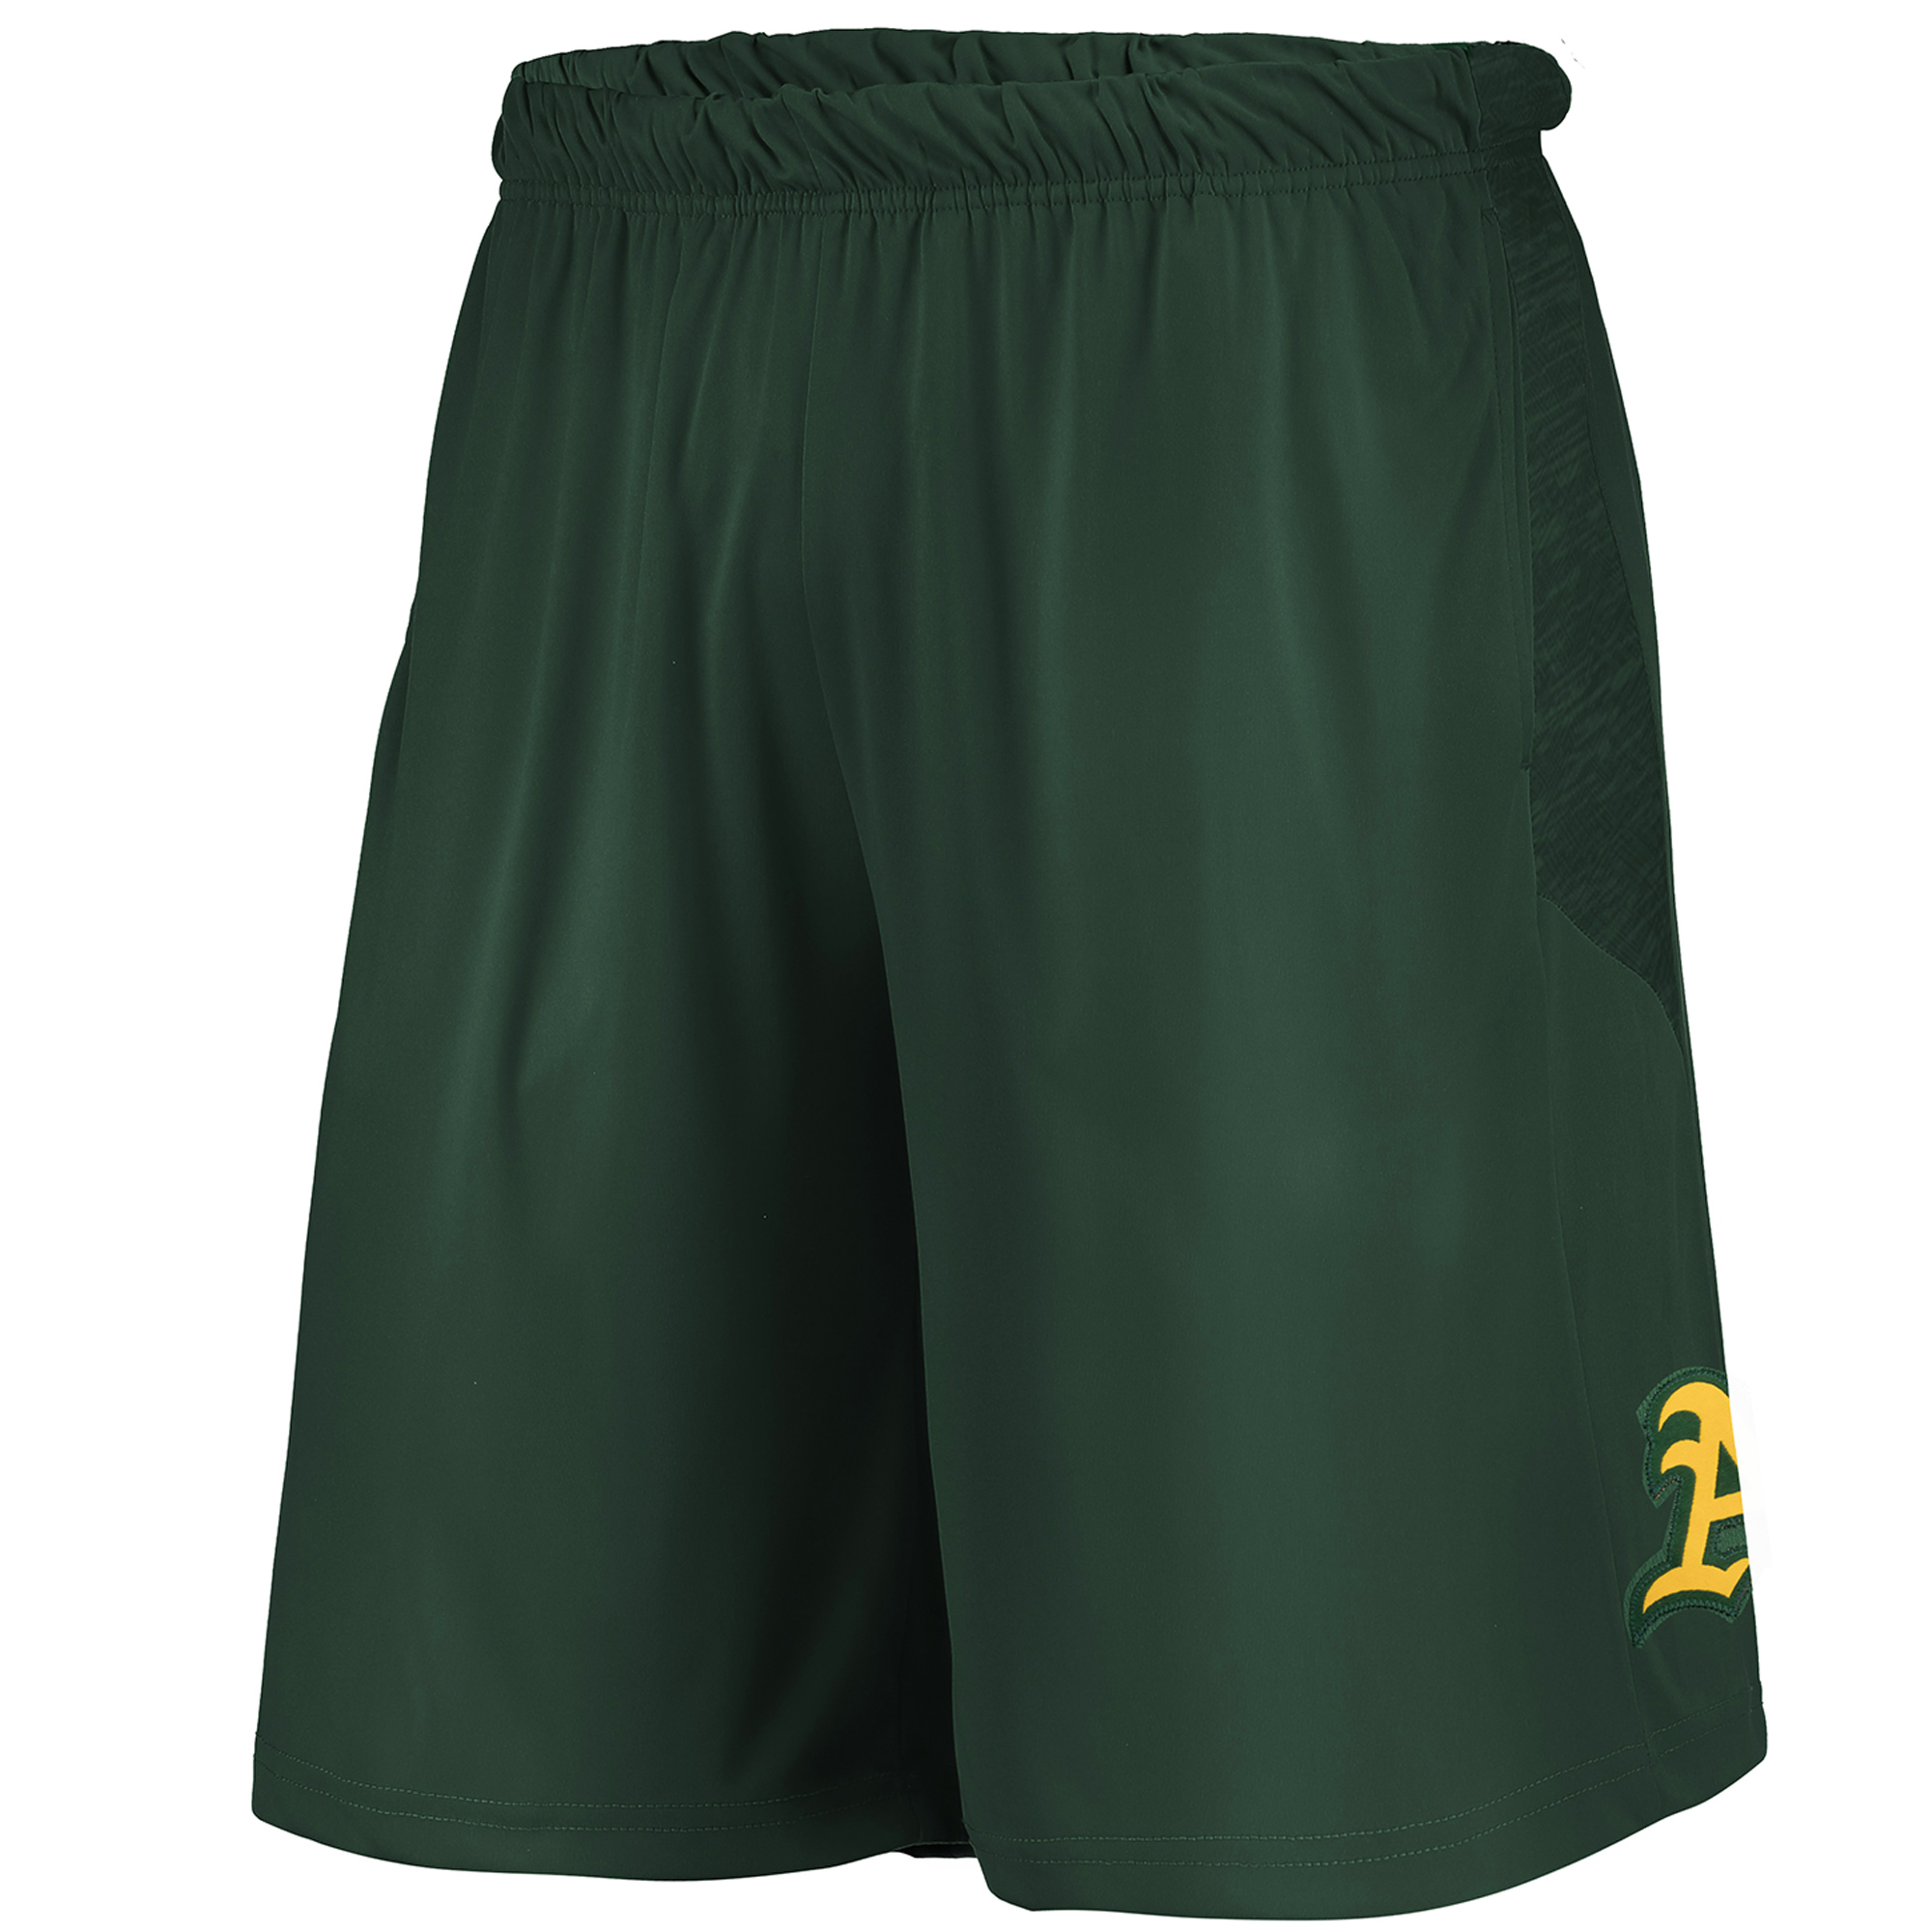 Oakland Athletics Youth Caught Looking Shorts - Green